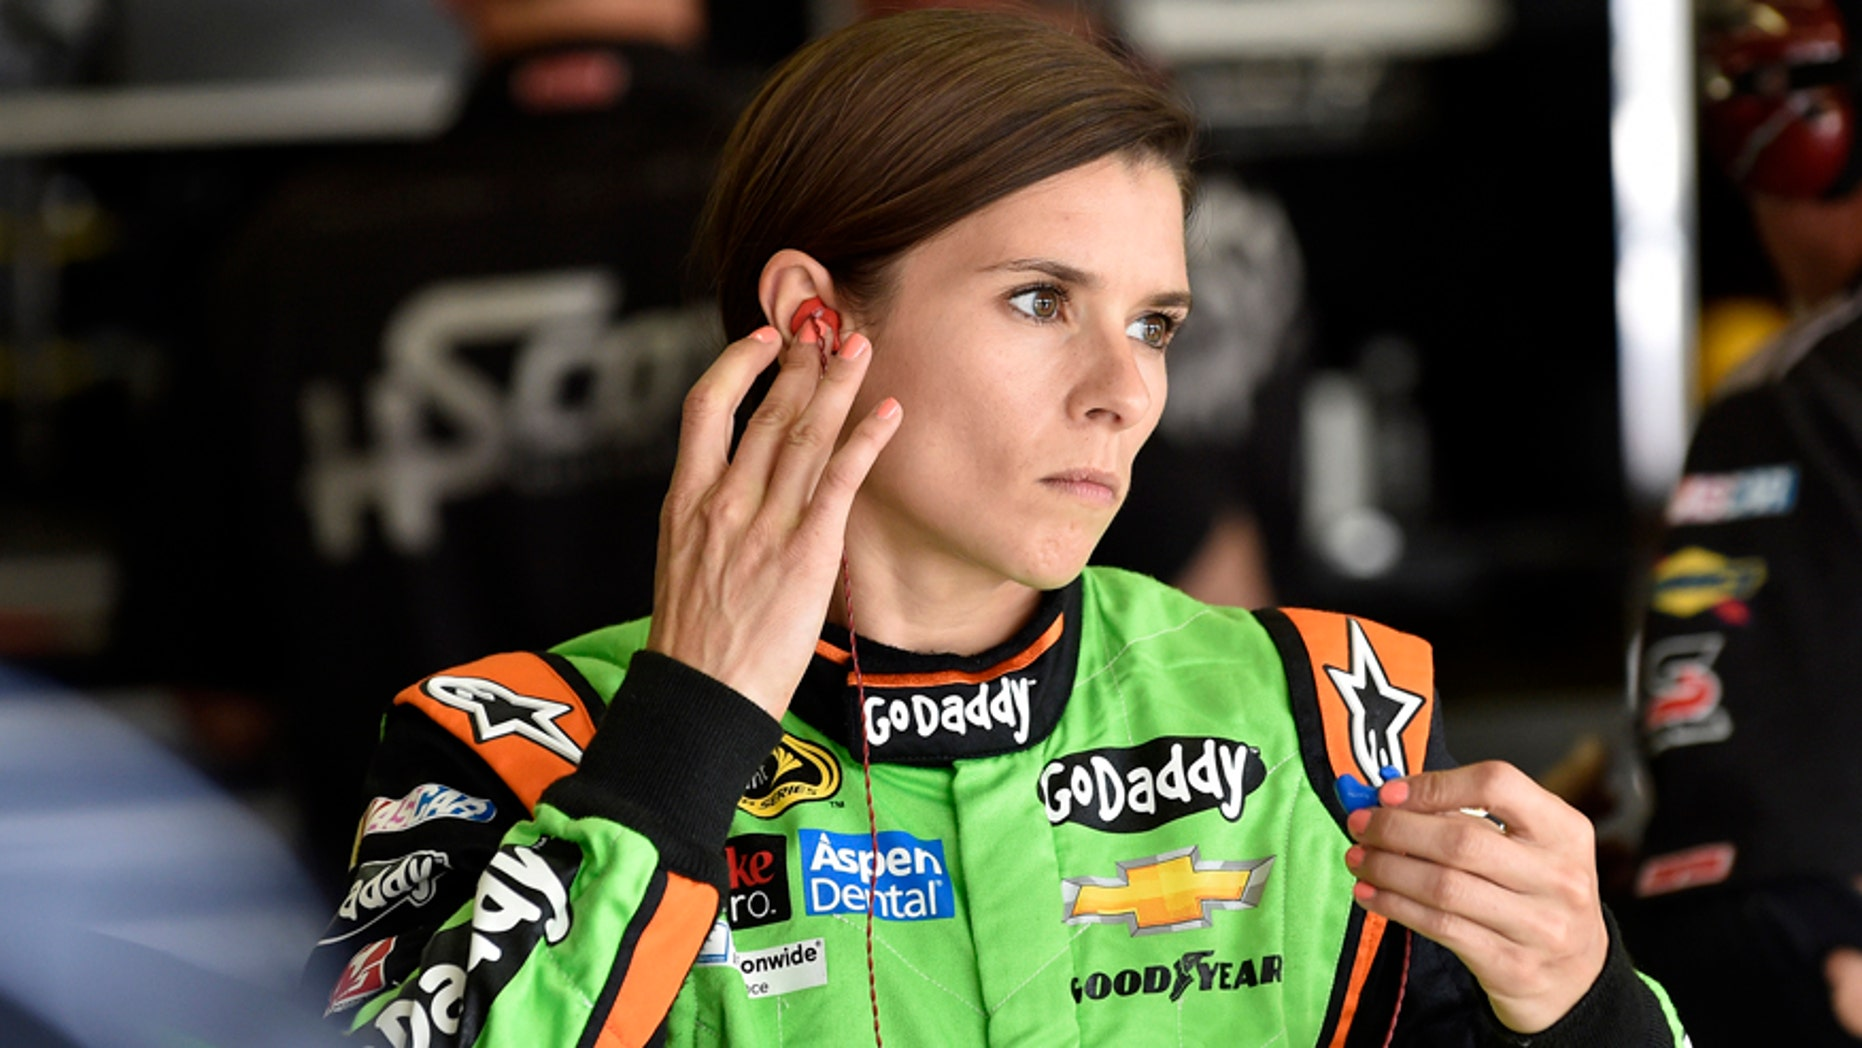 NASCAR driver Danica Patrick gets ready to practice for Sunday's NASCAR auto race at Atlanta Motor Speedway in Hampton, Ga., Friday, Aug. 29, 2014. (AP Photo/David Tulis)